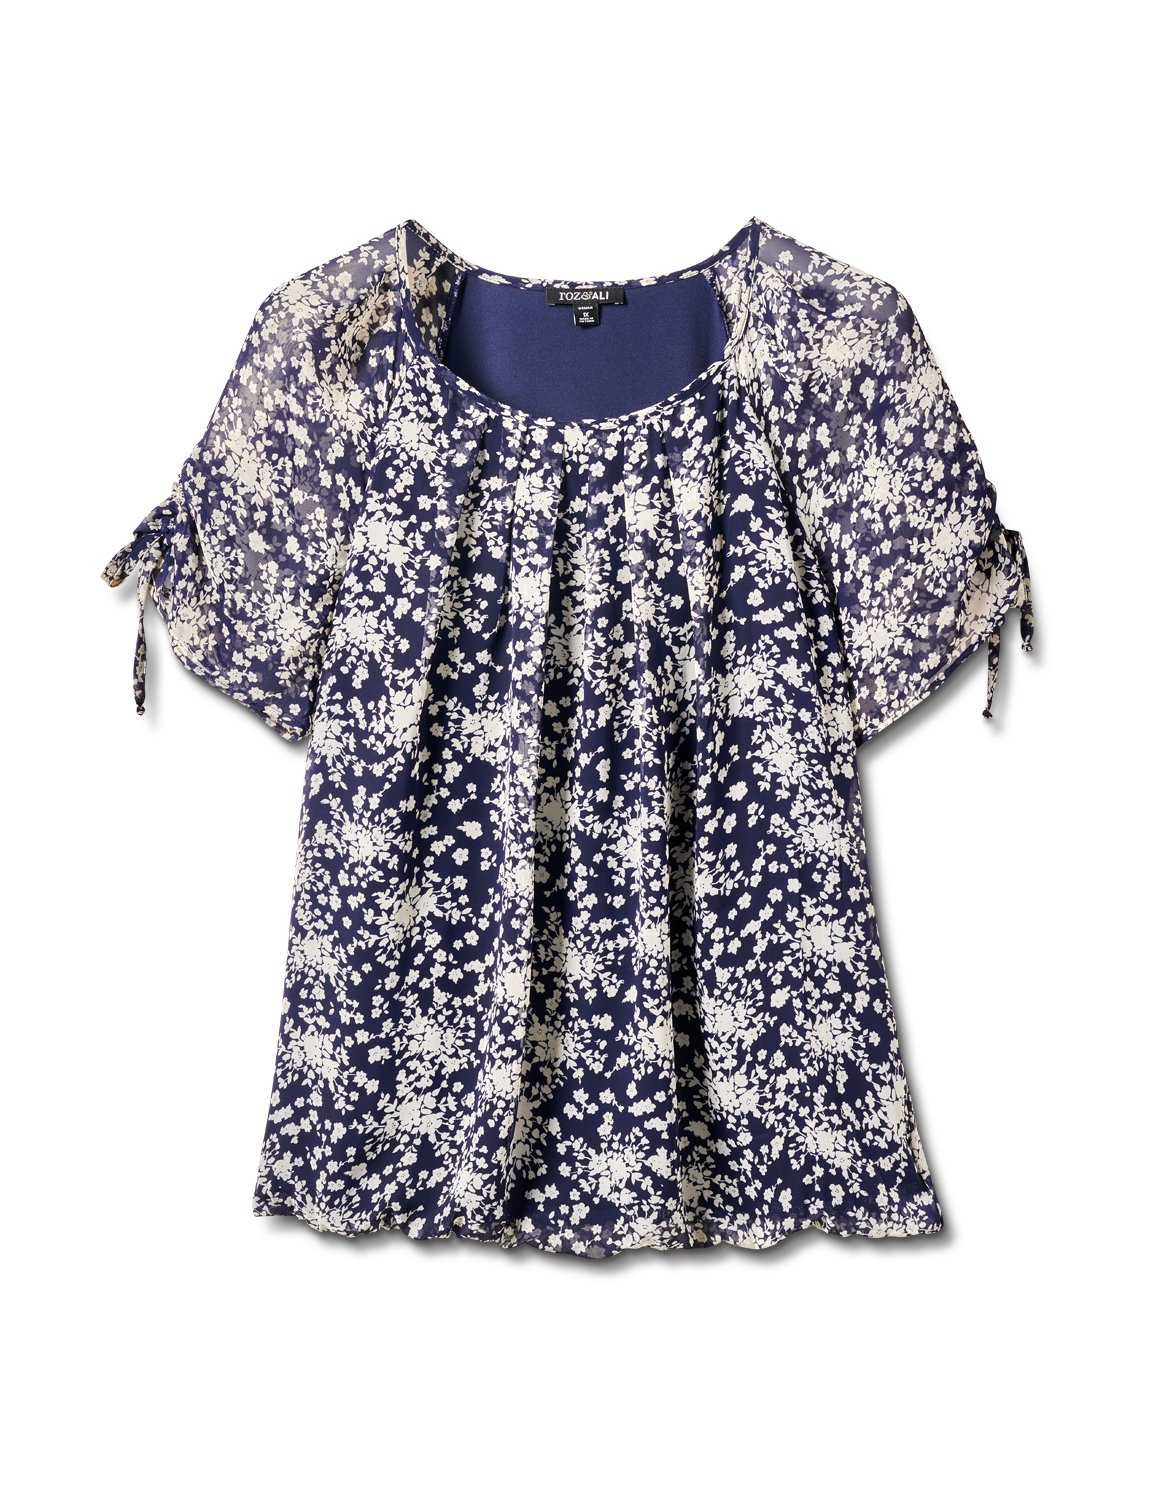 Small Floral Bubble Hem Top -Navy - Front